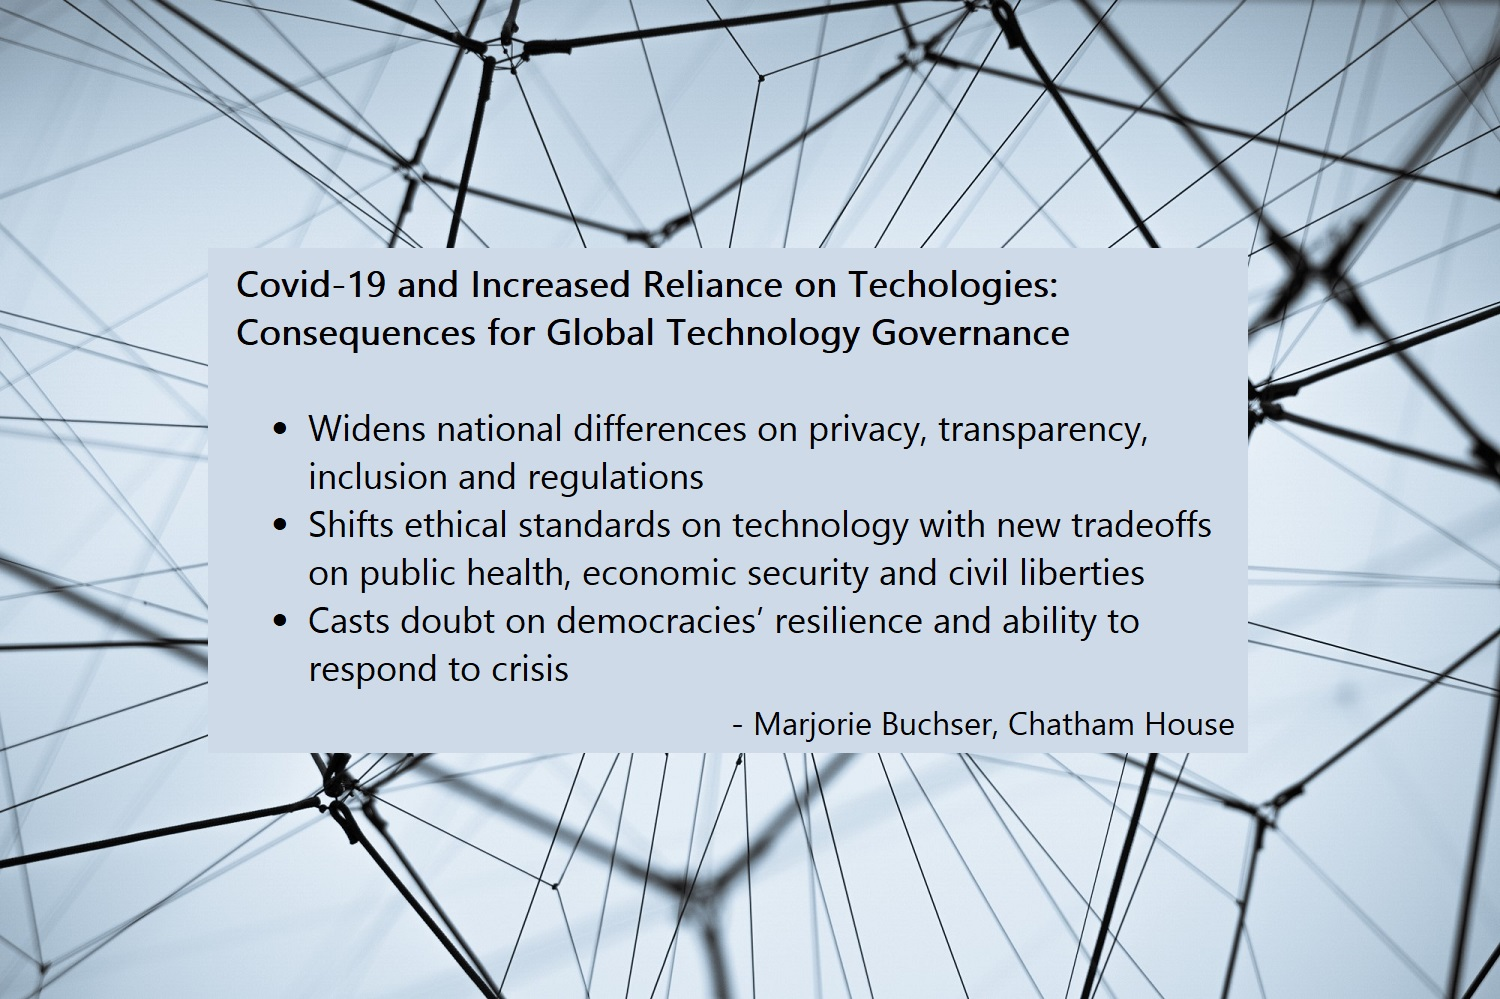 Consequences for Global Technology Governance  -	Widens national differences on privacy, transparency, inclusion and regulations  -	Shifts ethical standards on technology with new tradeoffs on public health, economic security and civil liberties   -	Casts doubt on democracies' resilience and ability to respond to crisis  -	Marjorie Buchser, Chatham House